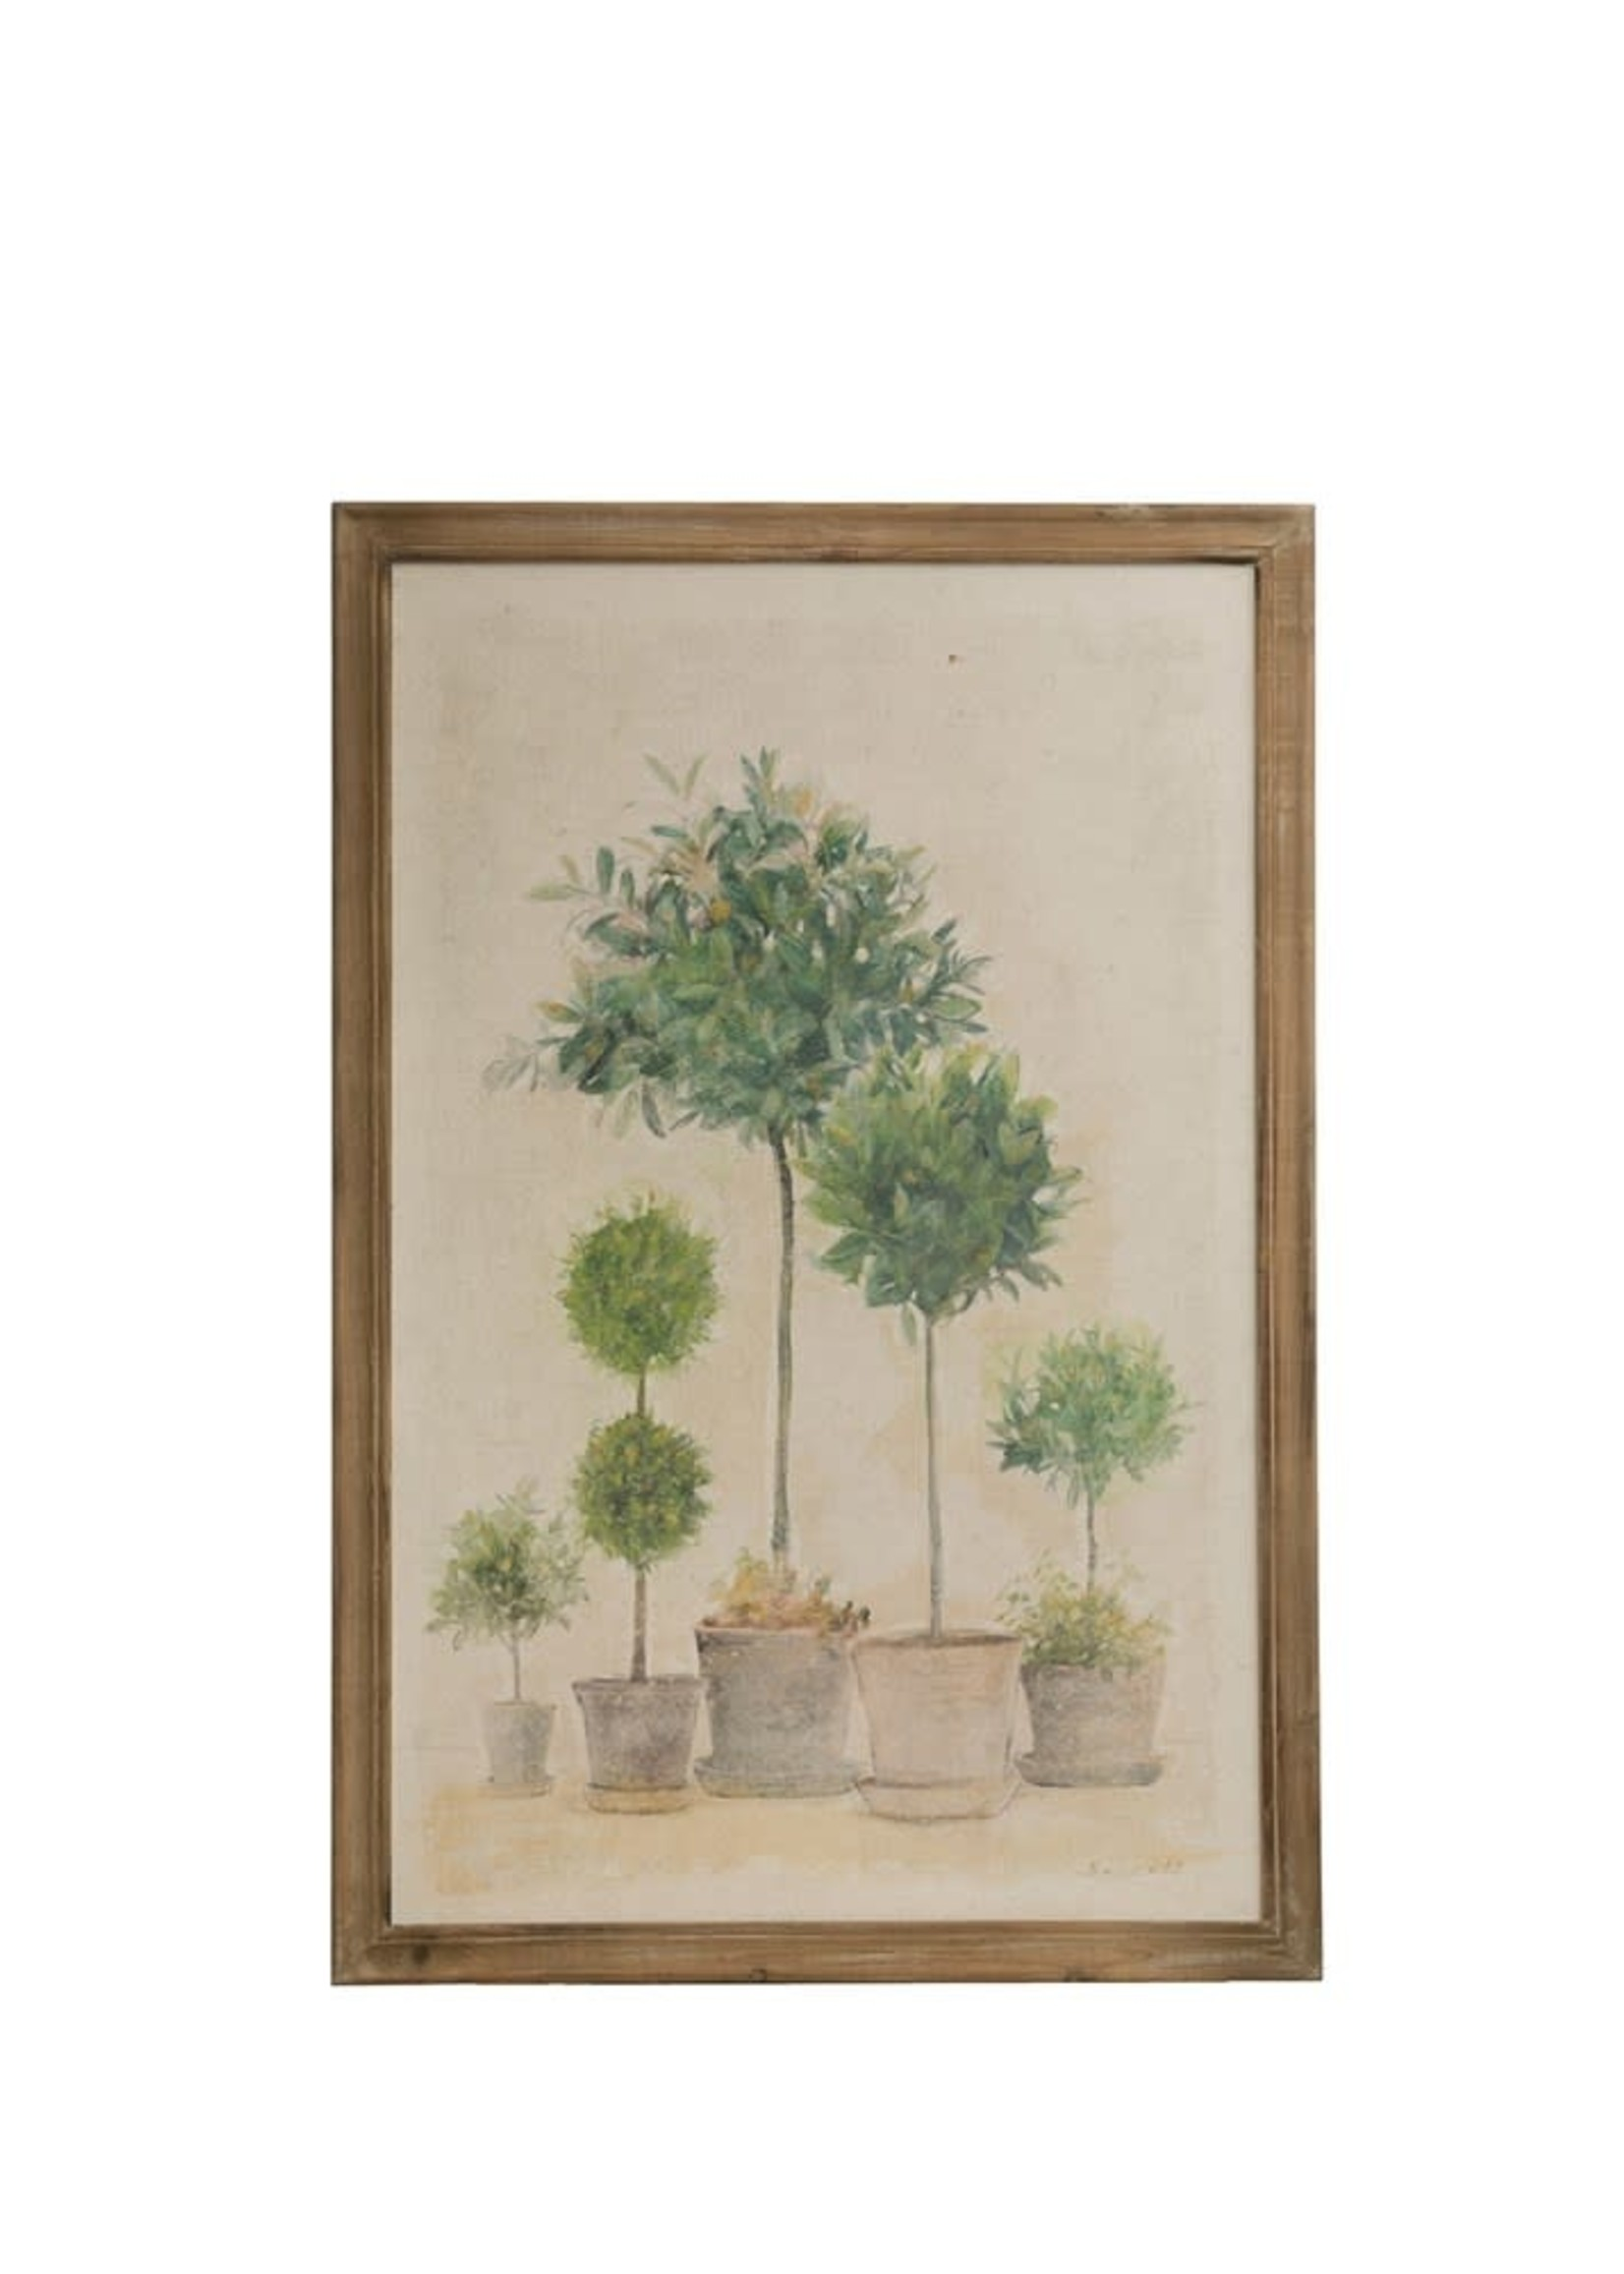 Wood Framed Wall Decor w/ Boxwood Topiary in Pots